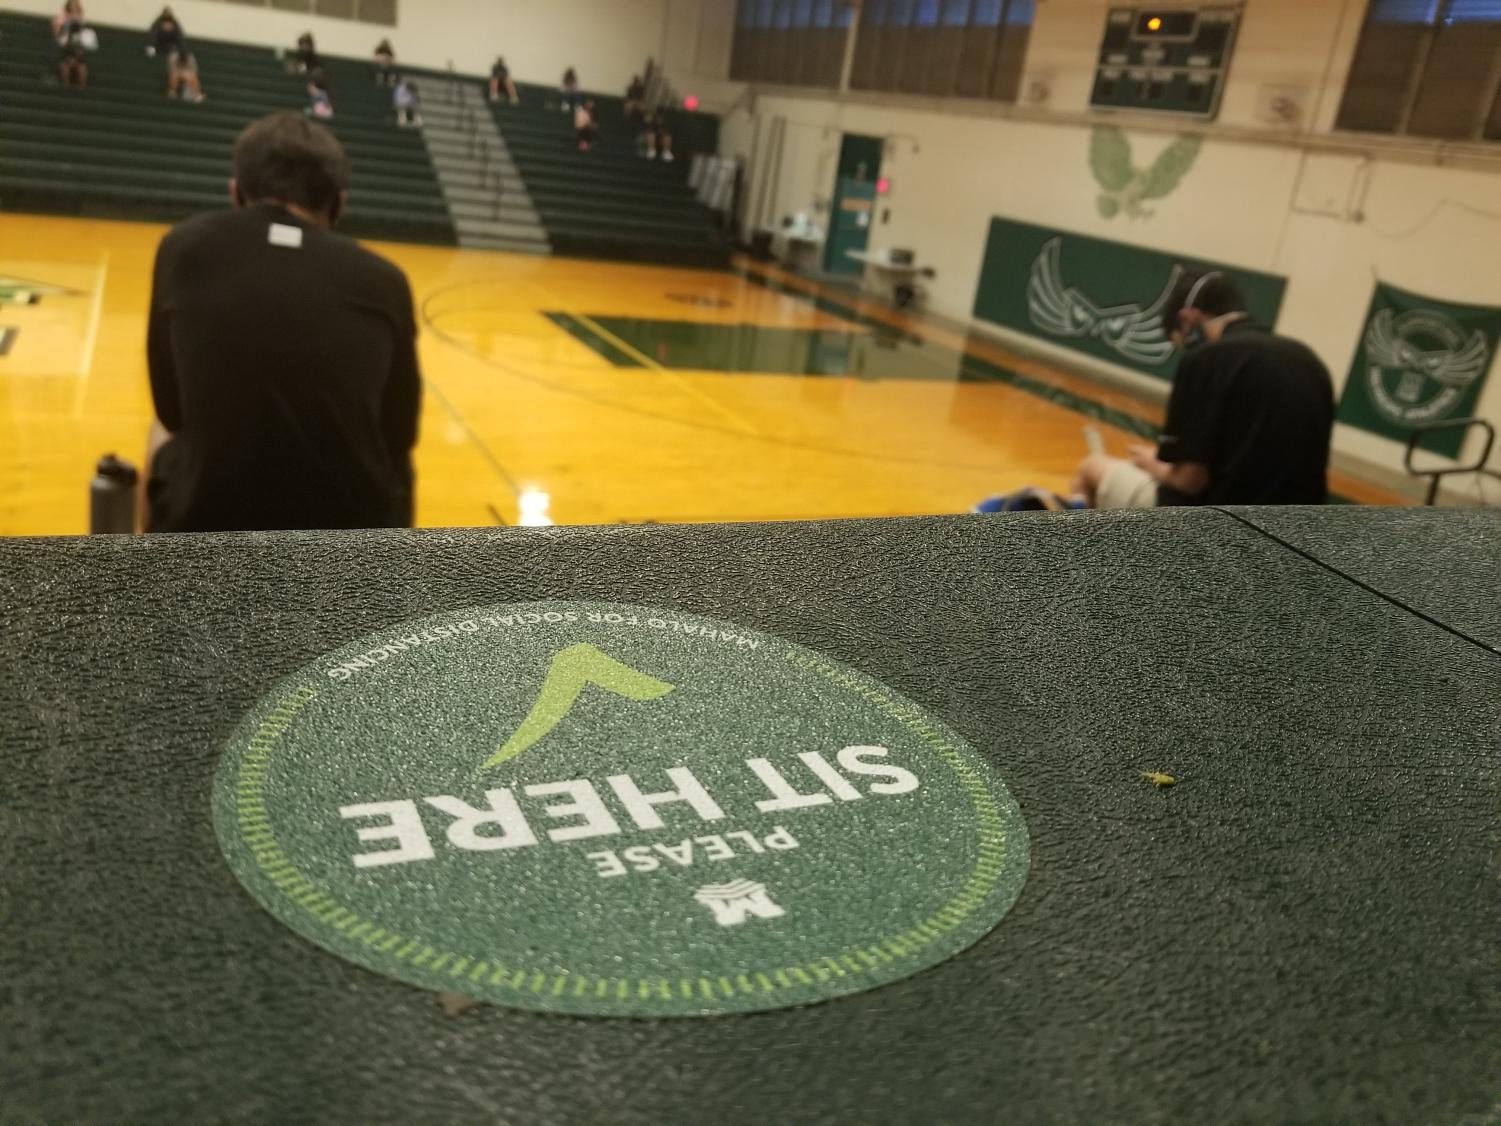 A socially distanced sticker lies in the gymnasium for students to sit and be safe. The Mid-Pacific community shared how they are coping in a CO- VID-19 school environment.